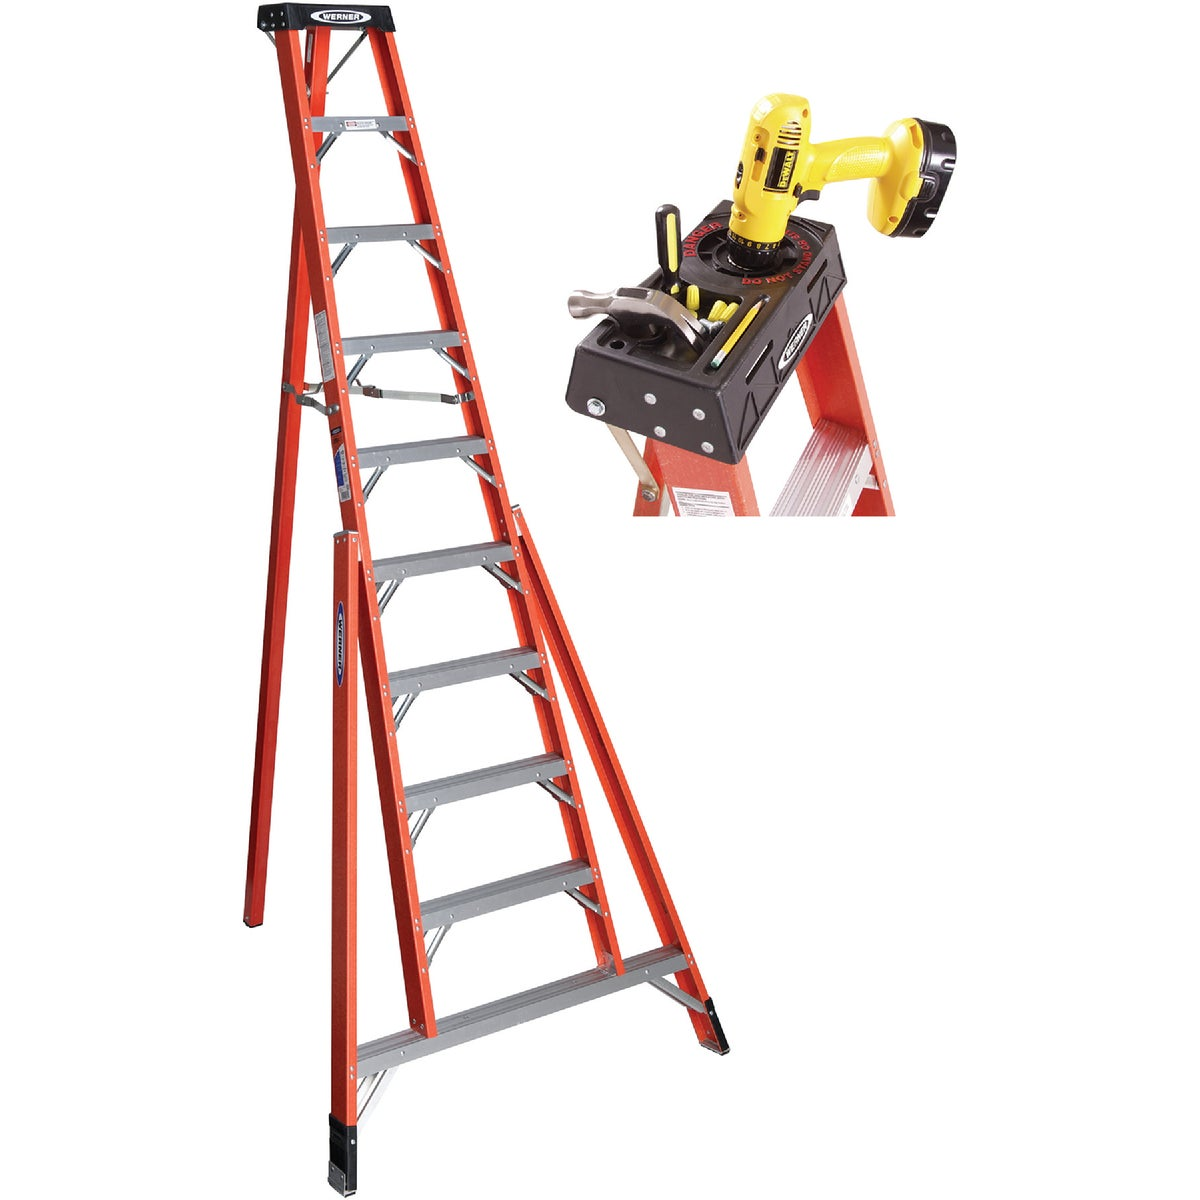 10' FBGL TRIPOD LADDER